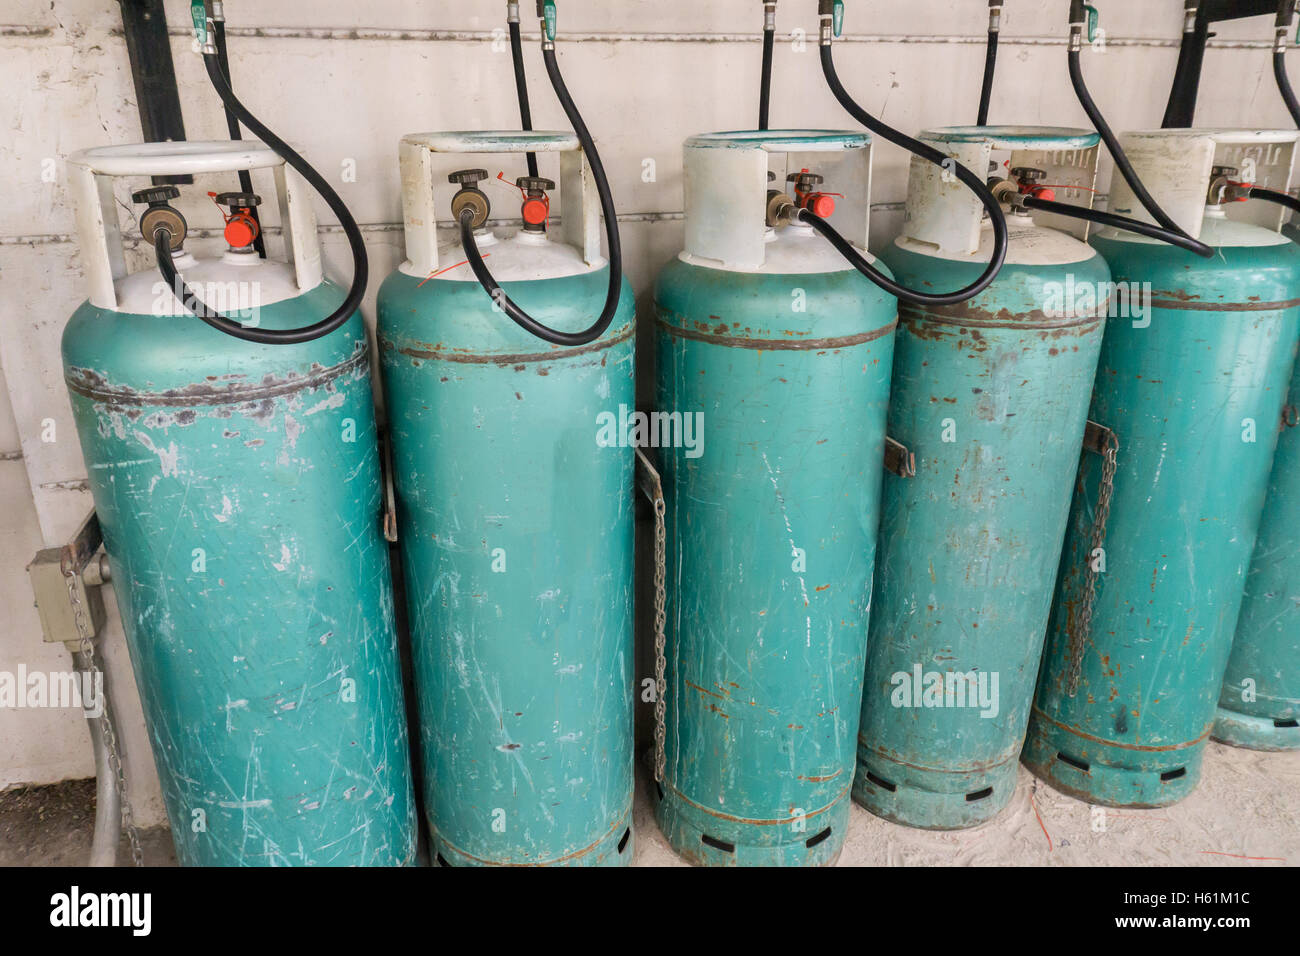 Domestic Gas Cylinder Stock Photos & Domestic Gas Cylinder Stock ...